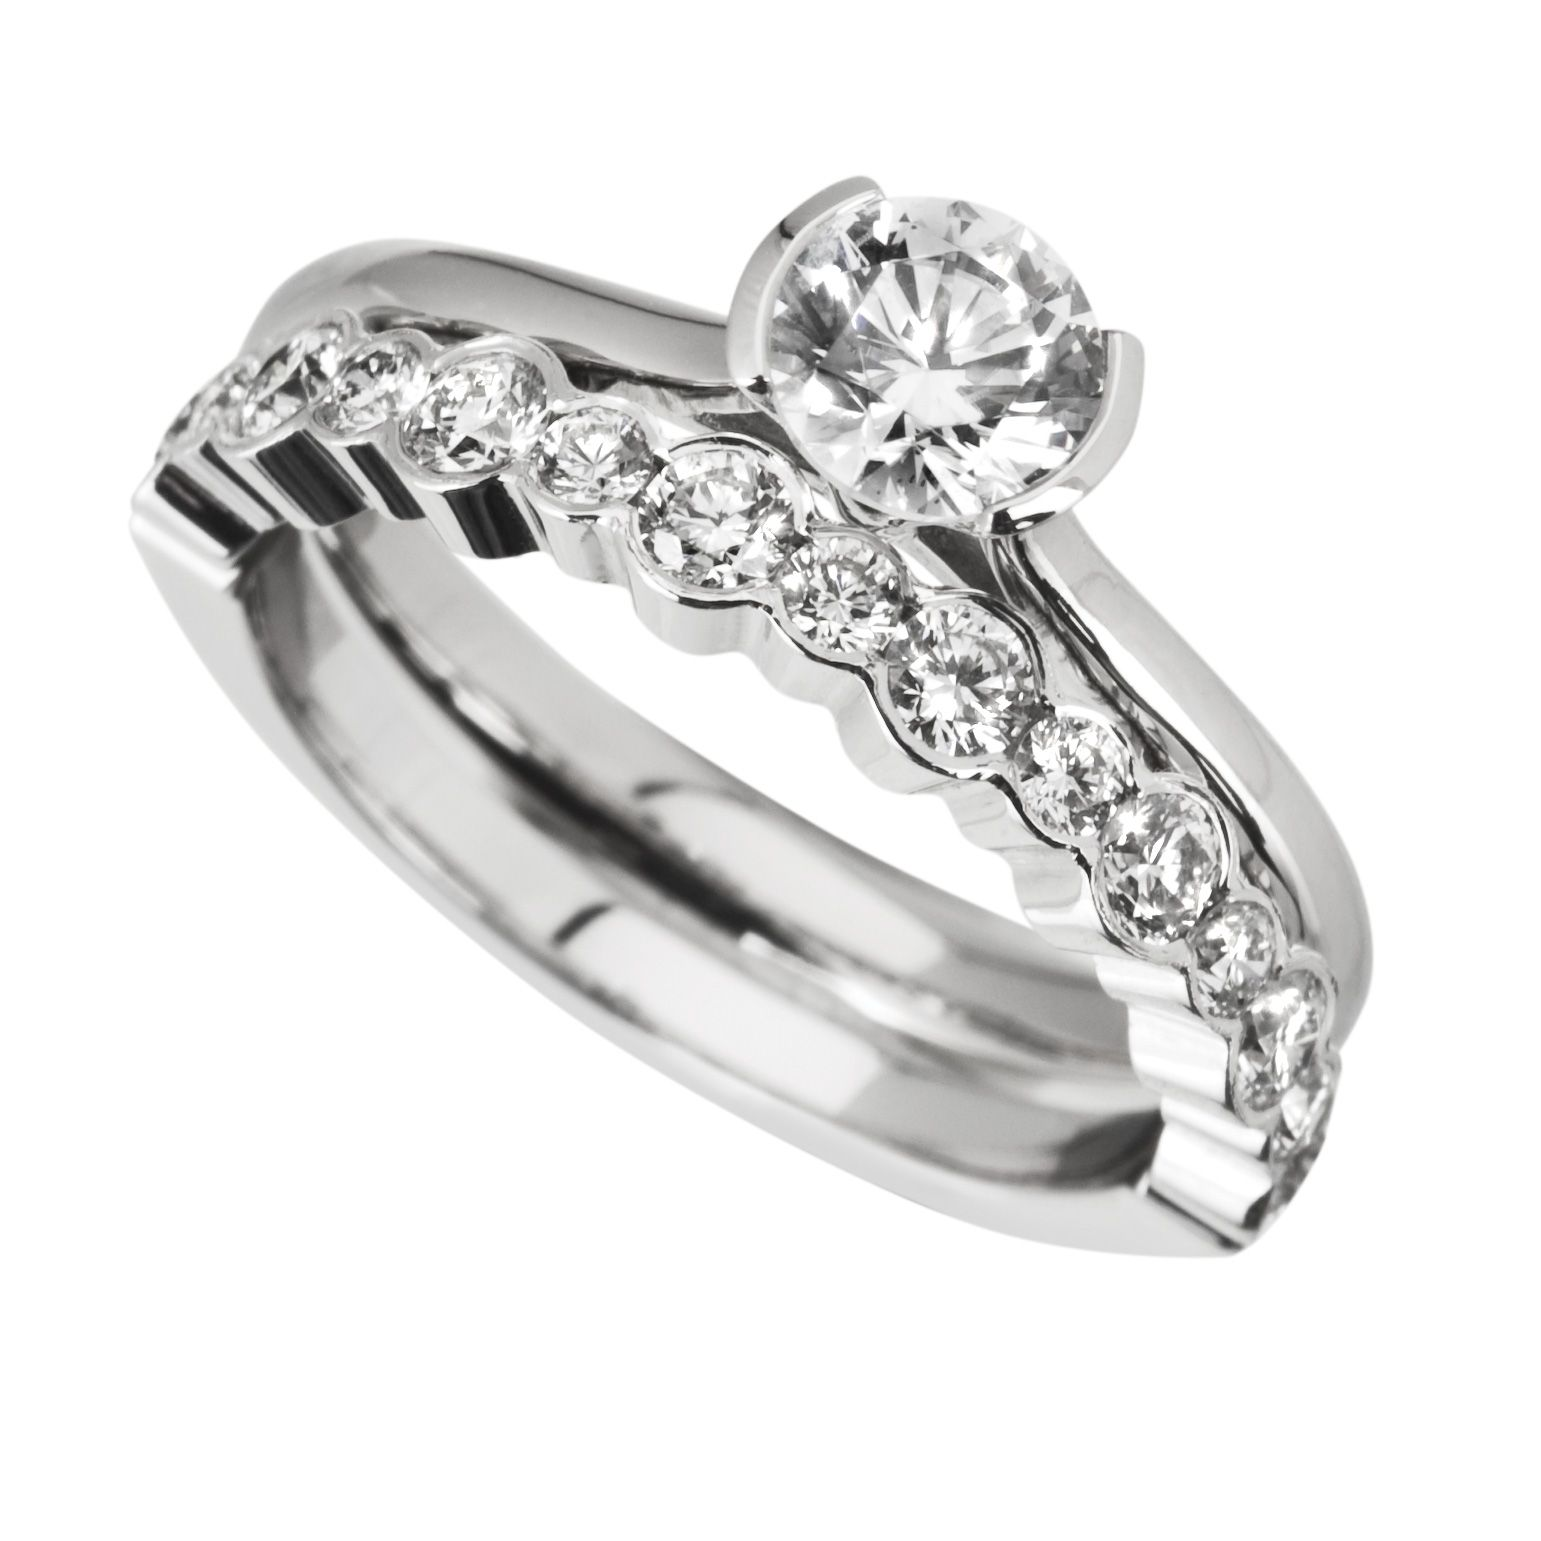 wedding sets images of wedding rings sets Rub Over Engagement Ring with Matching Diamond